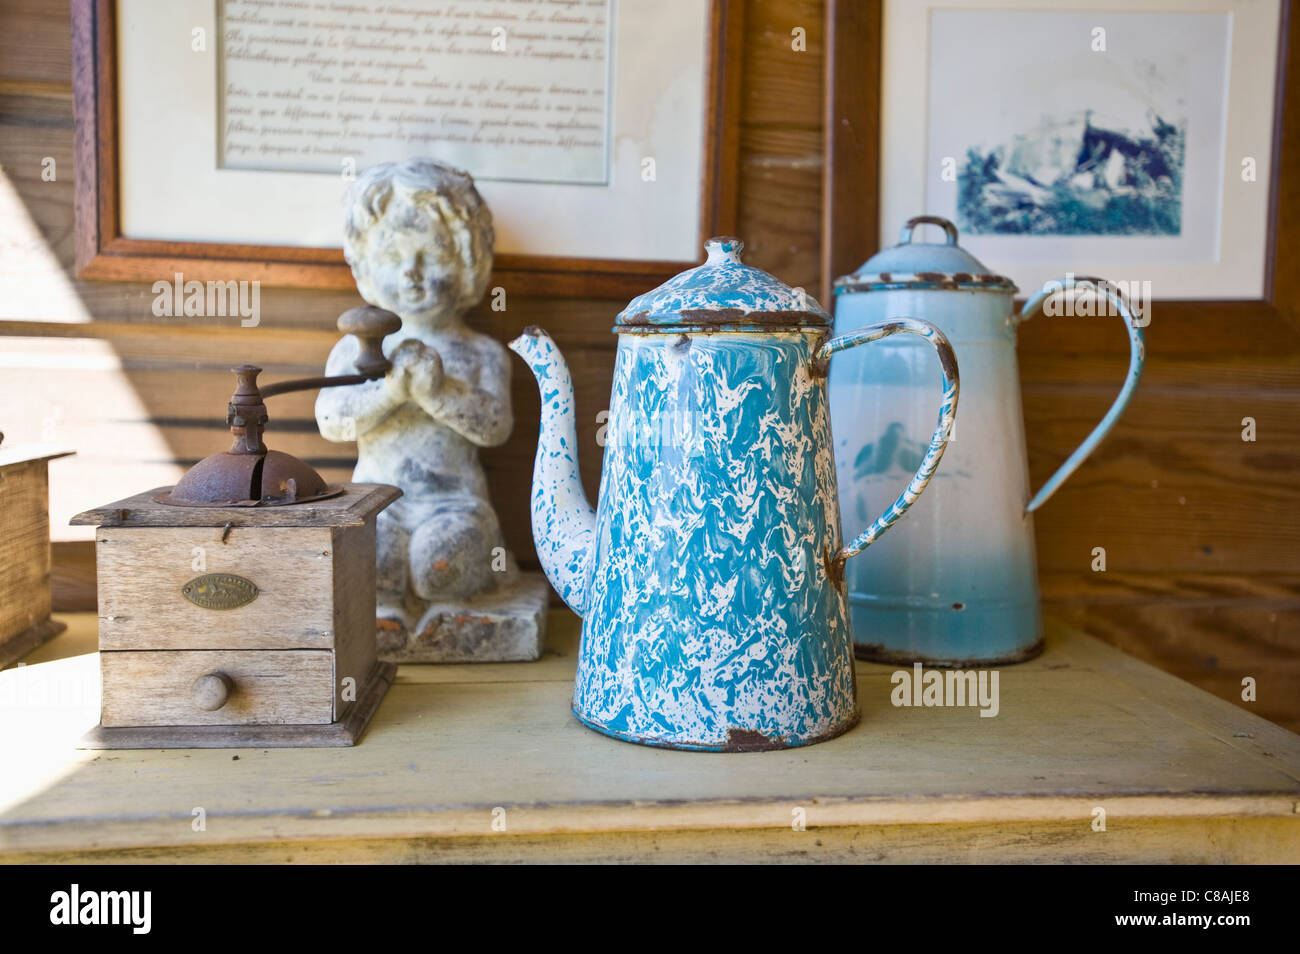 Coffee mill and enameled coffee pots - Stock Image